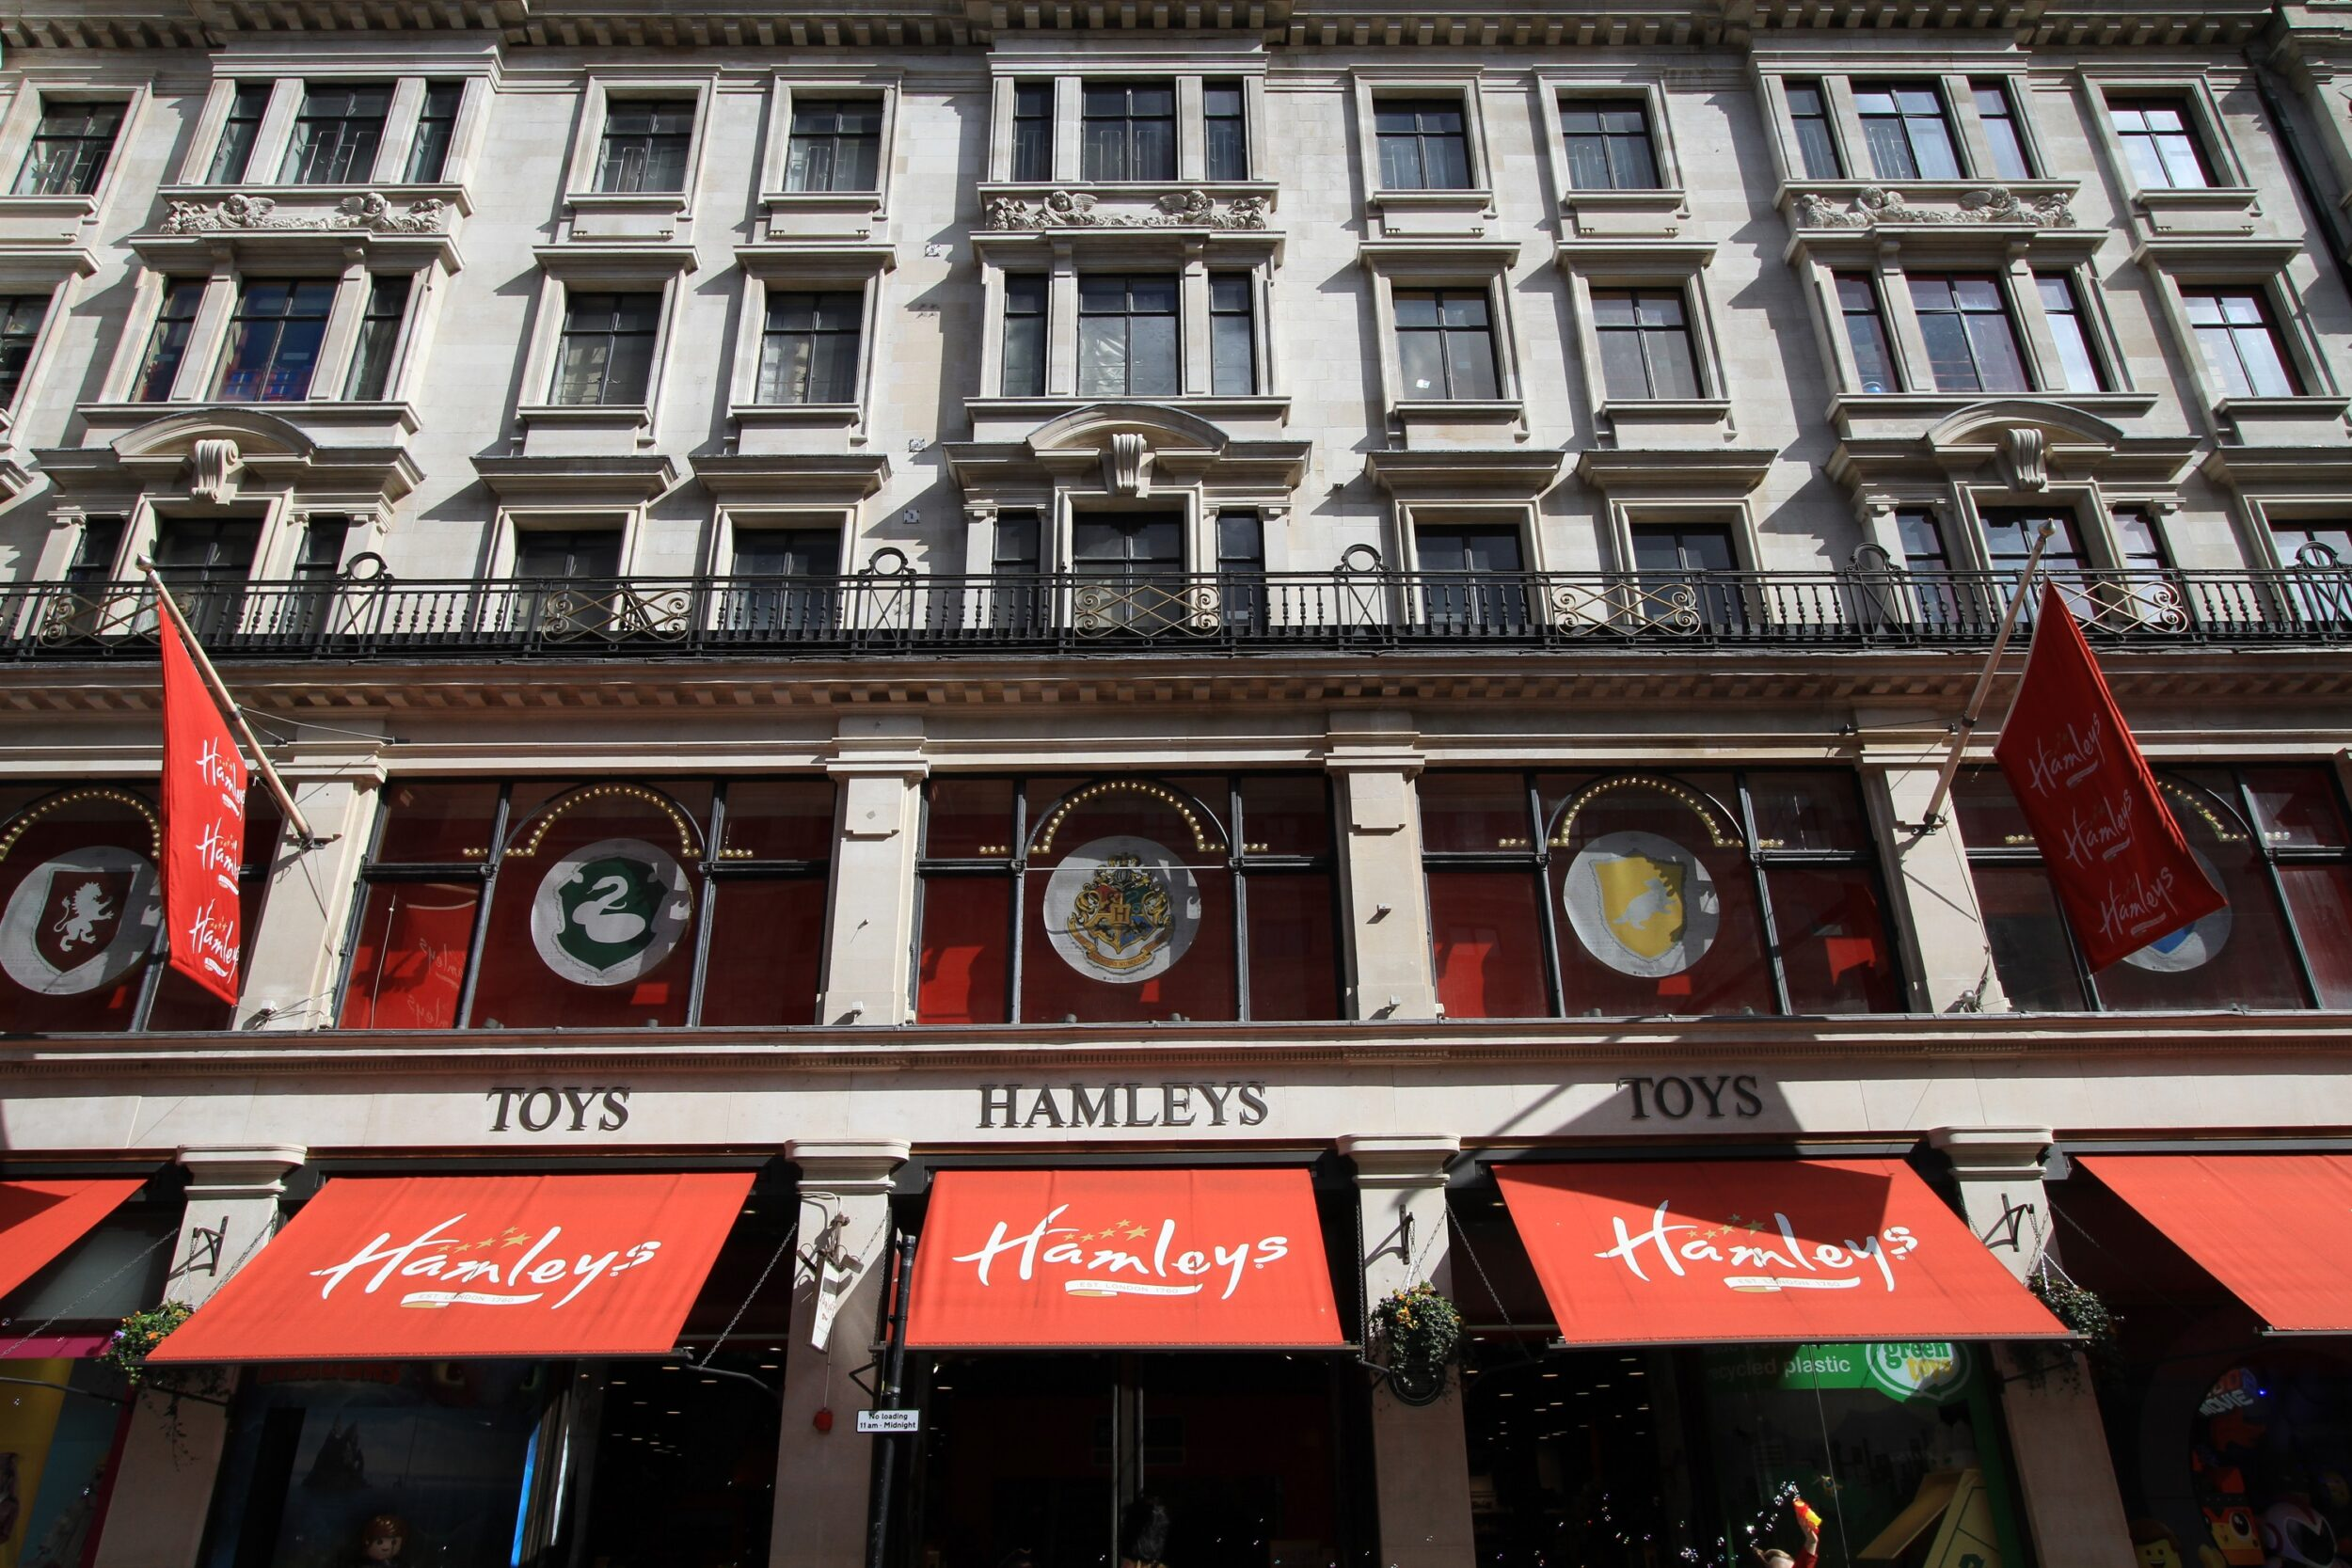 Hamleys toy store shop, London